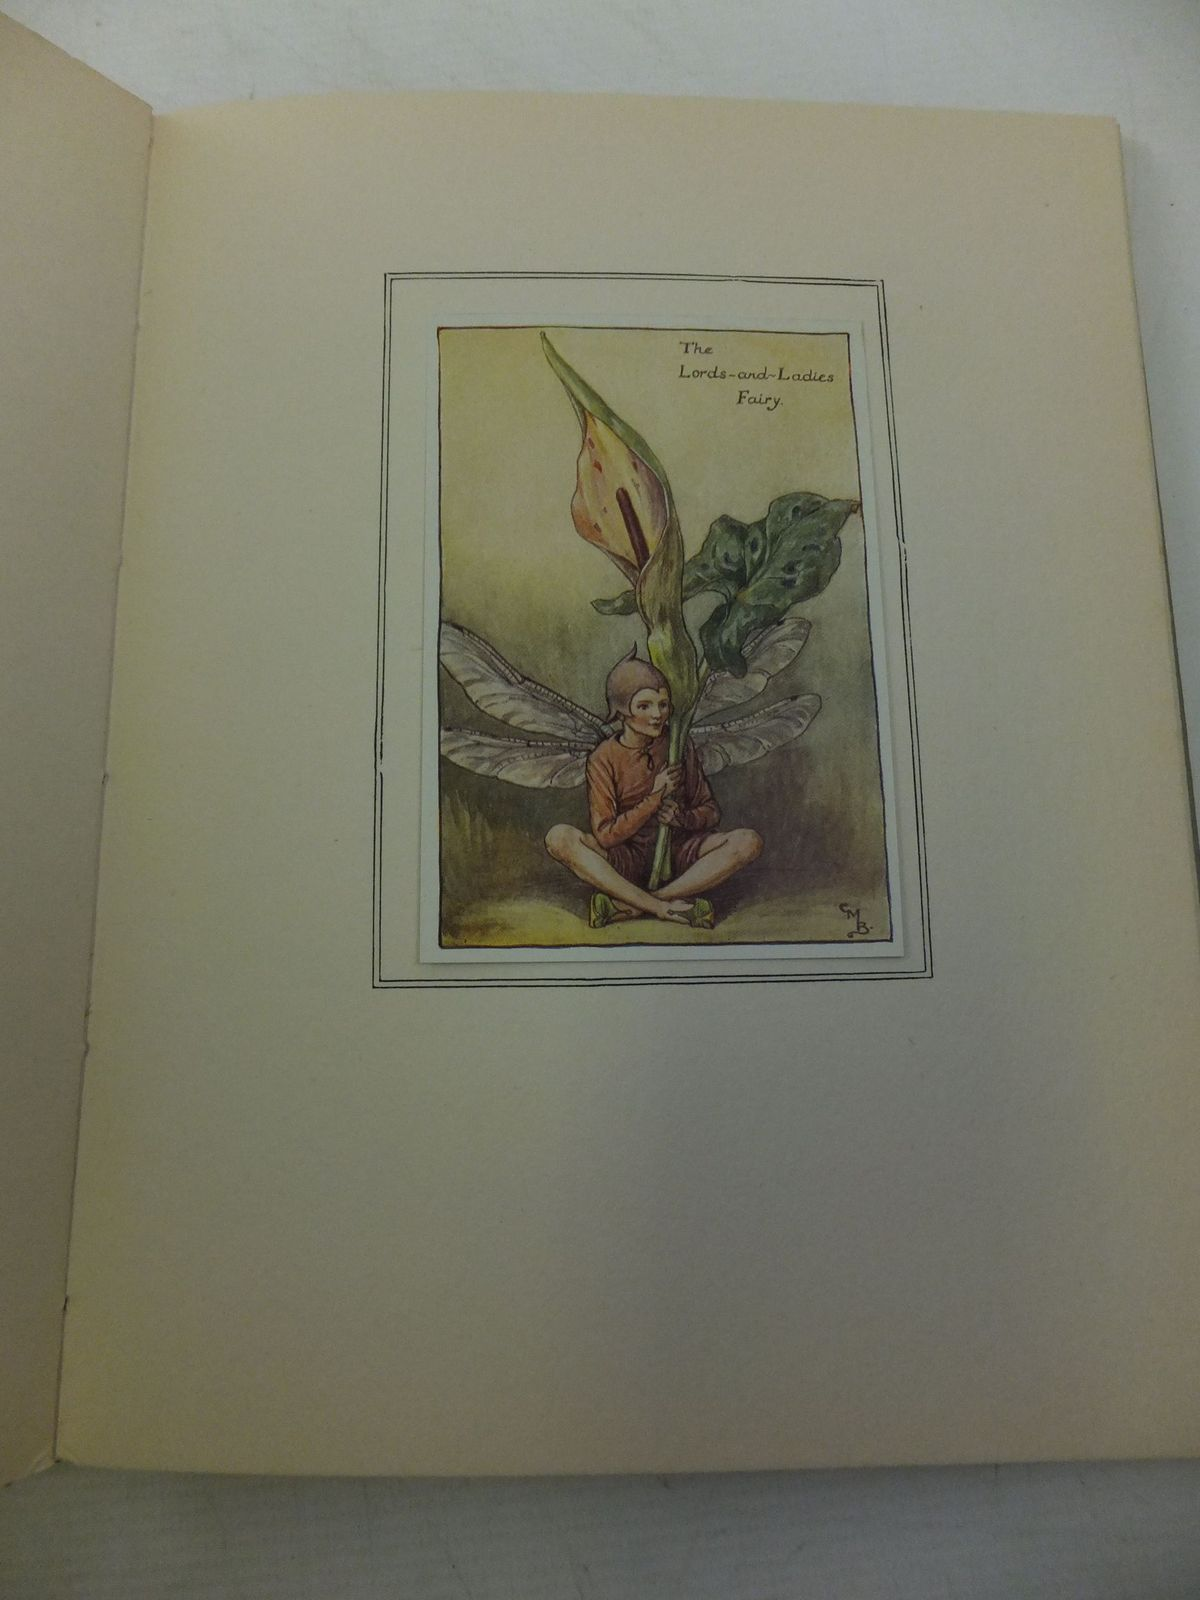 Photo of SPRING SONGS WITH MUSIC written by Barker, Cicely Mary Linnell, Olive illustrated by Barker, Cicely Mary published by Blackie & Son Ltd. (STOCK CODE: 2114228)  for sale by Stella & Rose's Books